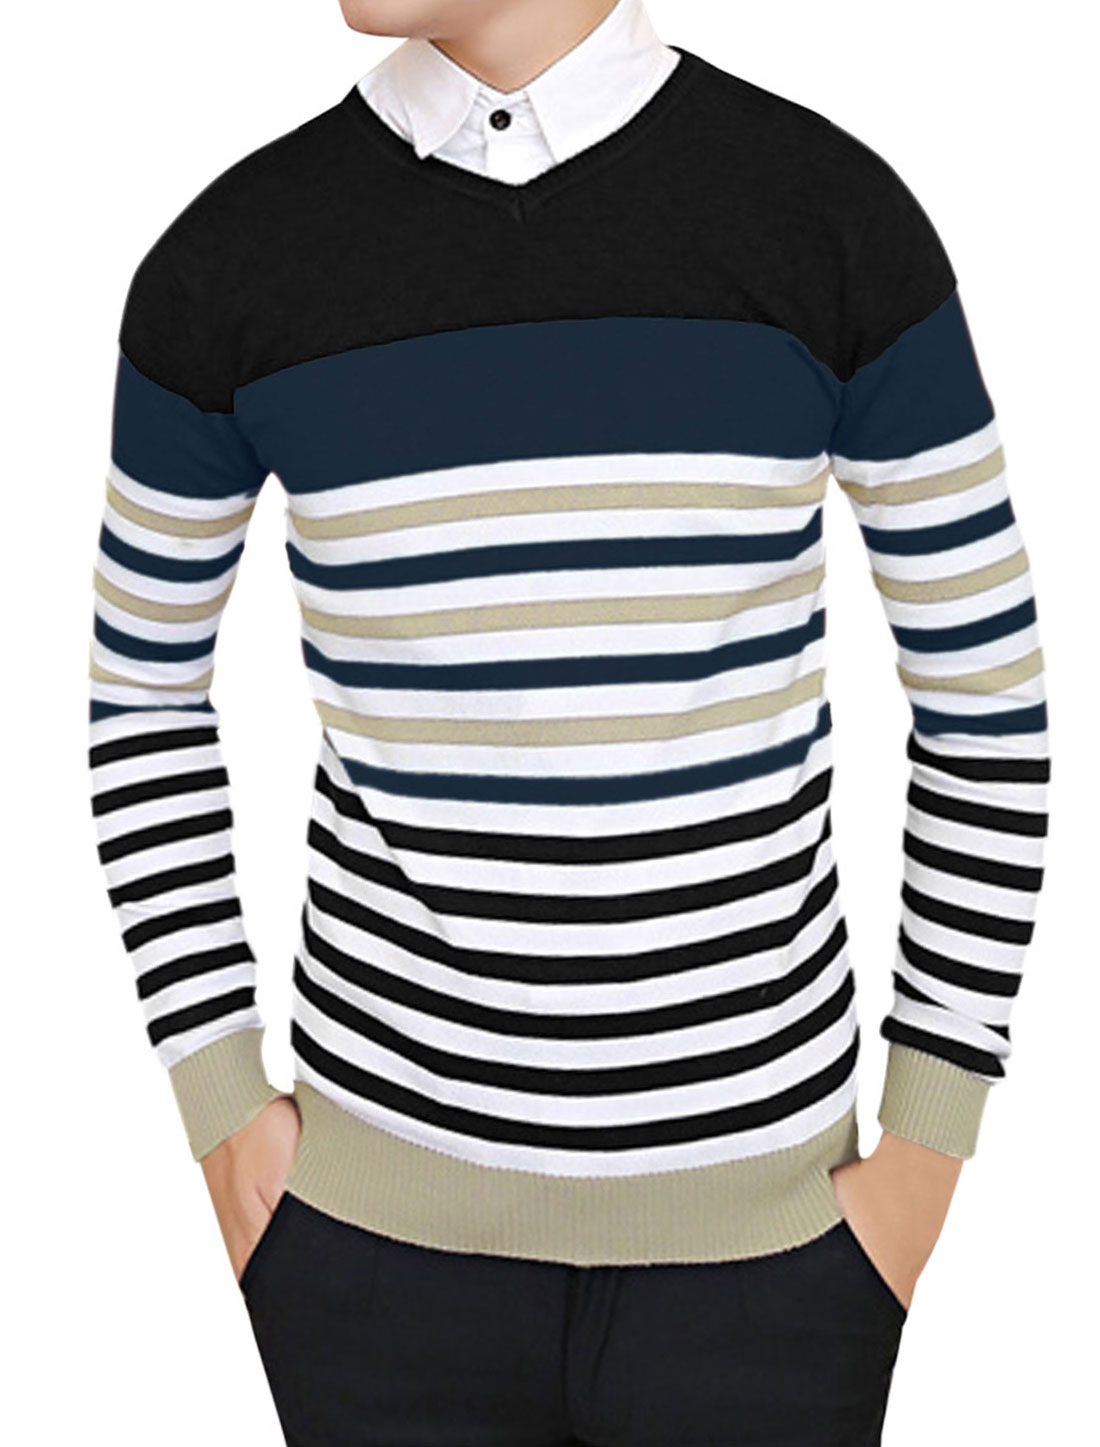 Men Pullover Long Sleeve Horizontal Stripes Casual Knit Shirt Black S